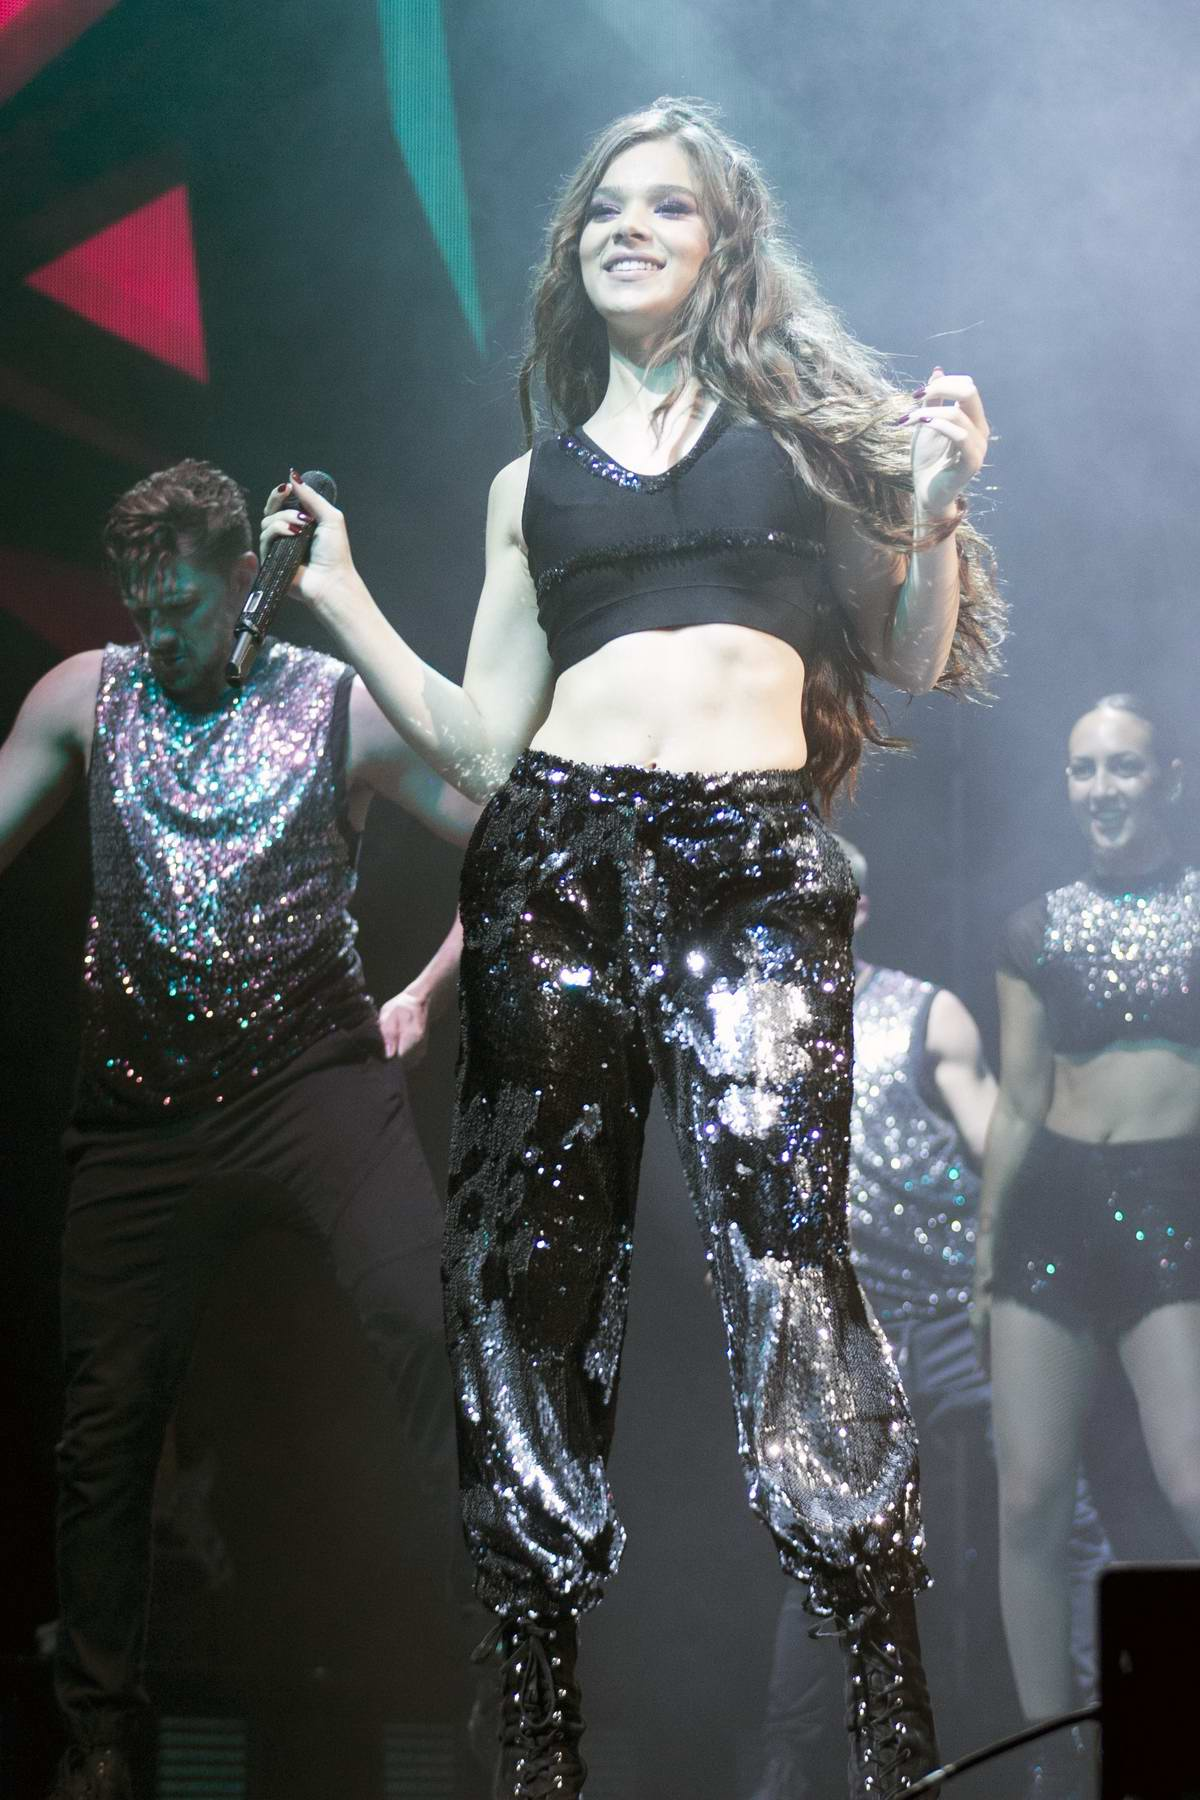 Hailee Steinfeld performs at The Voicenotes Tour at the MIDFLORIDA Credit Union Amphitheatre in Tampa, Florida